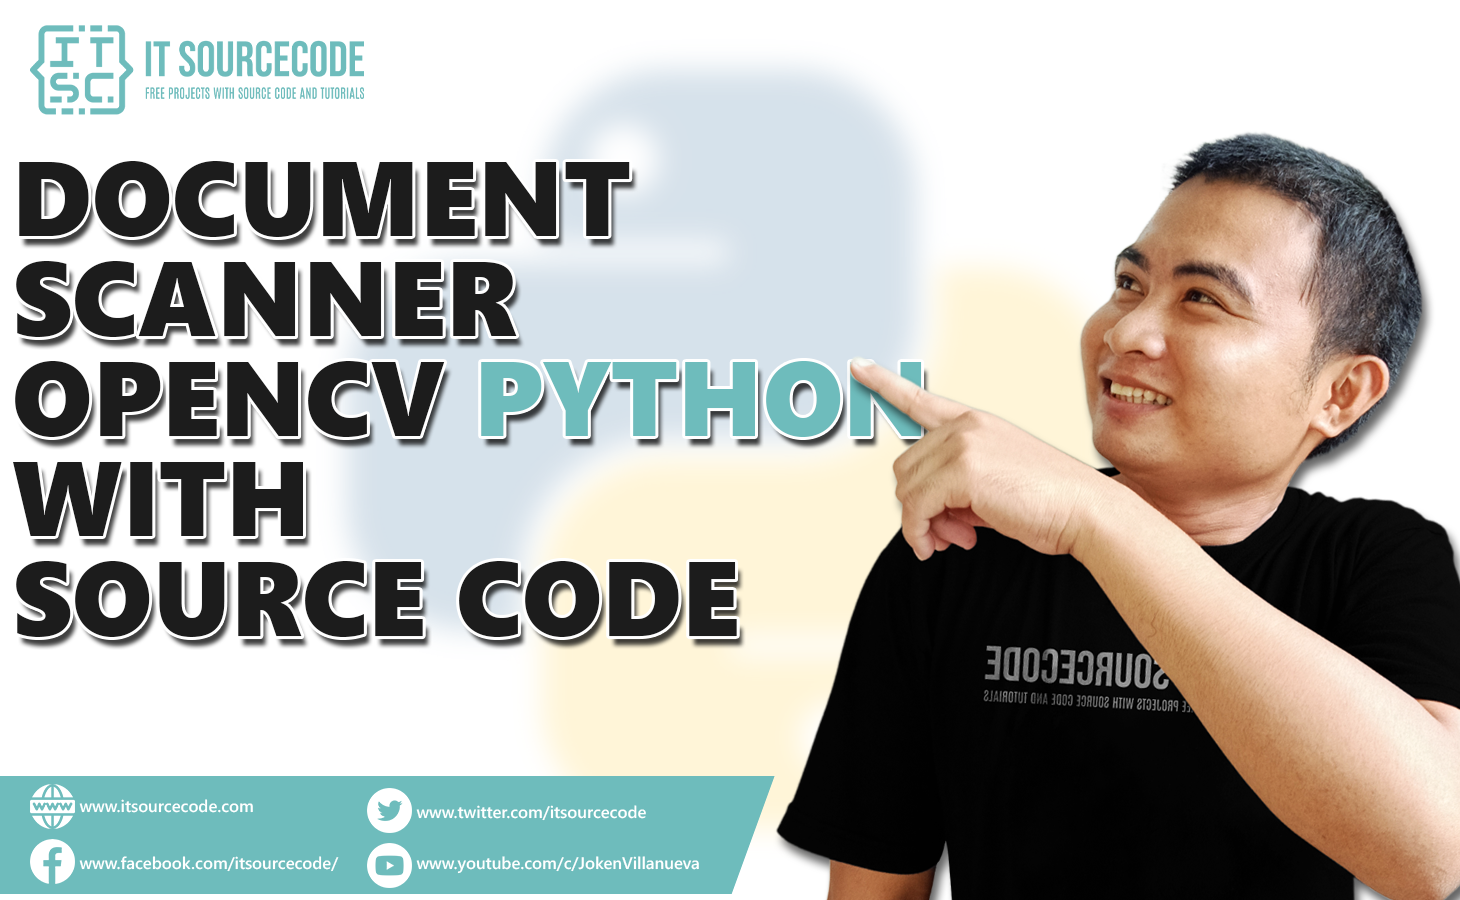 Document Scanner OpenCV Python With Source Code